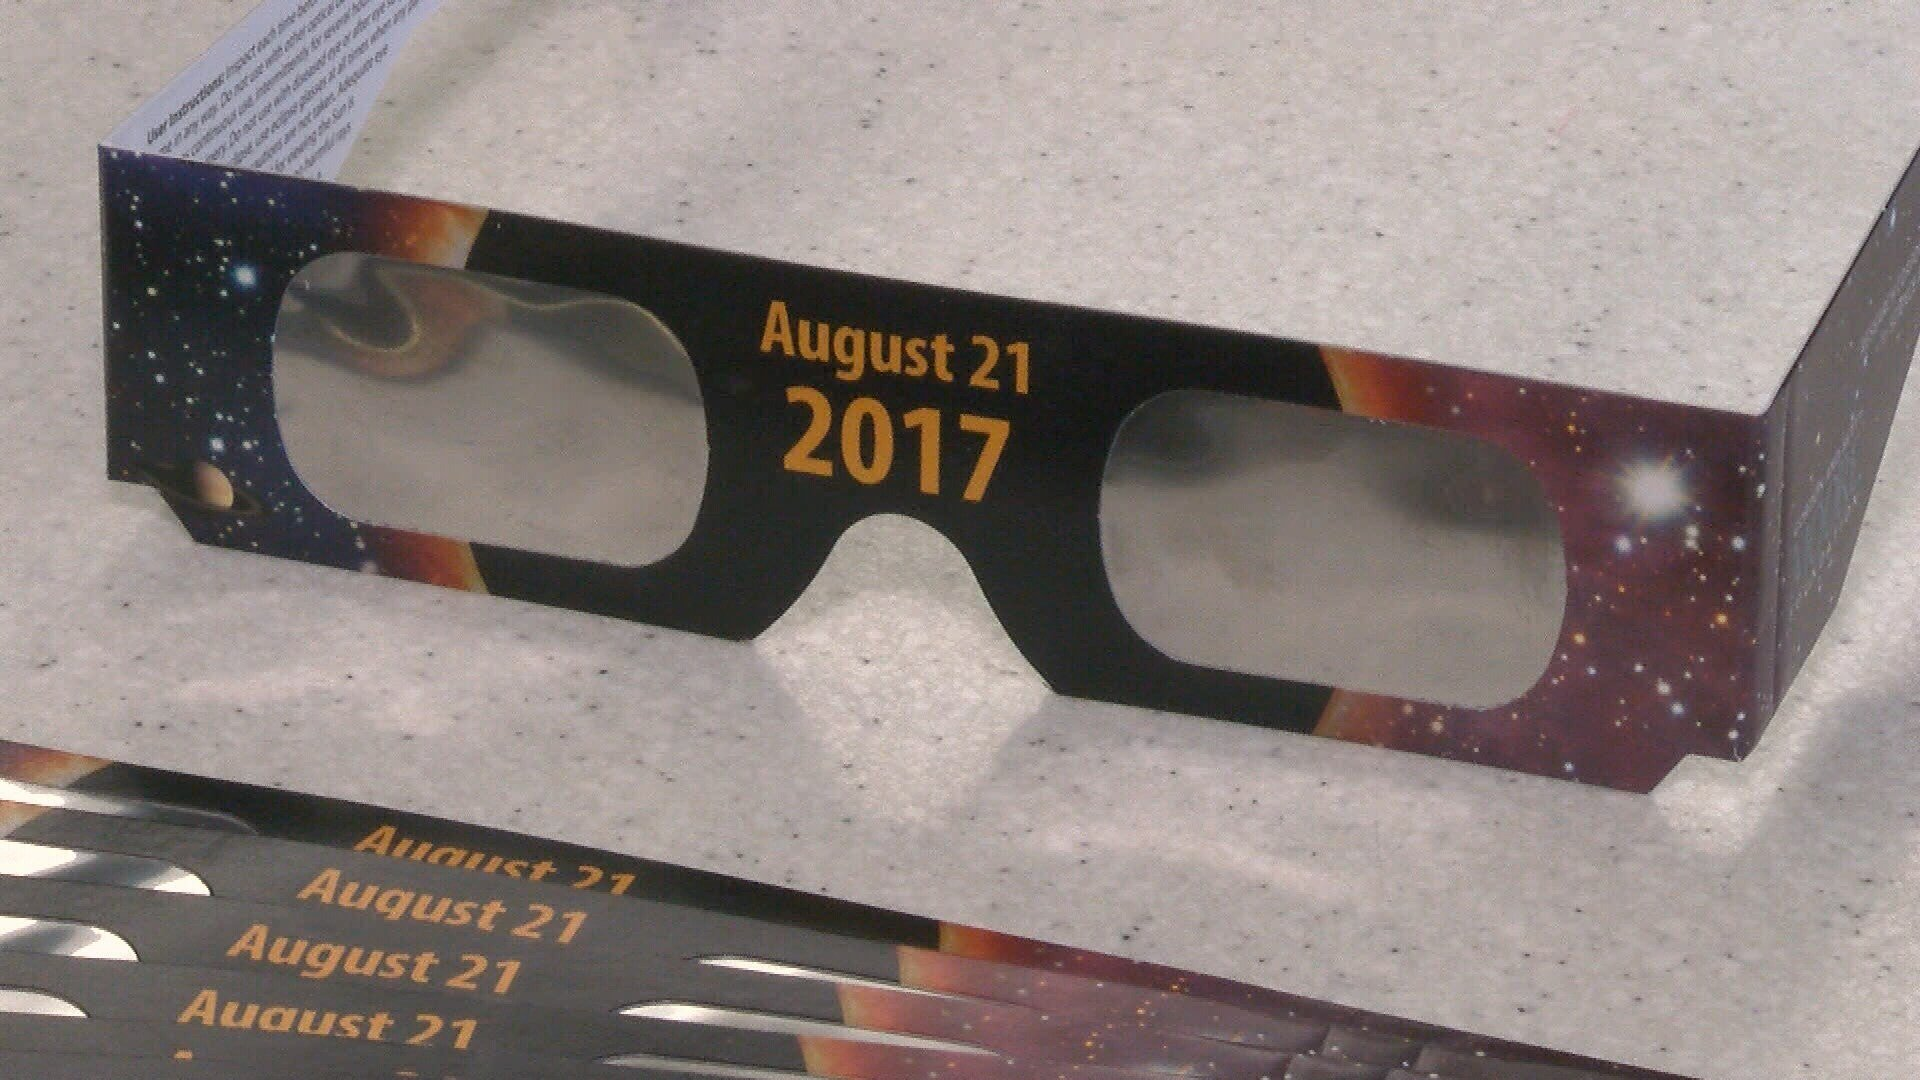 Beware uncertified solar eclipse glasses as counterfeiters get tricky